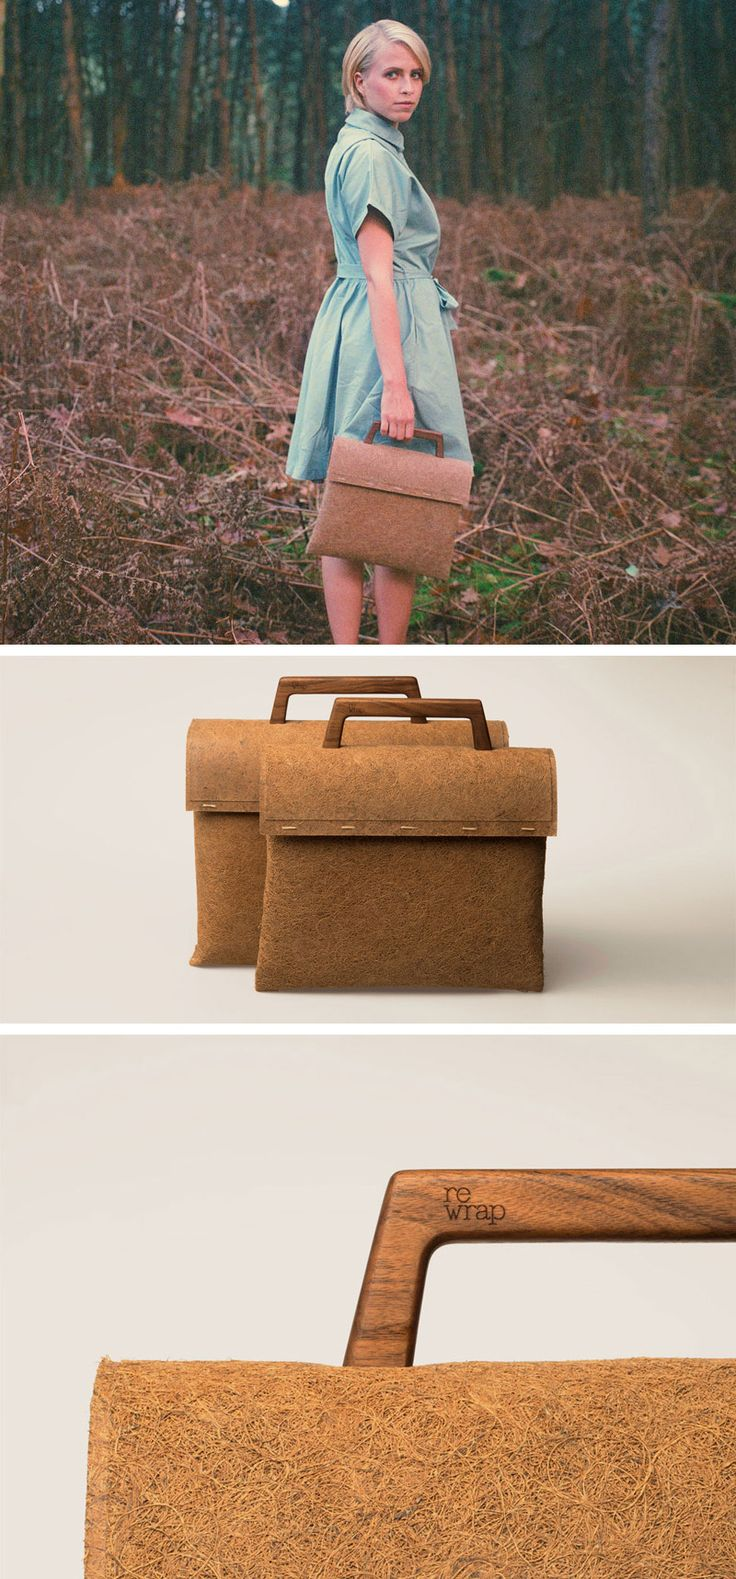 Dutch brand reWrap, have designed the Tree Bag, which is made using fully biodegradable materials.